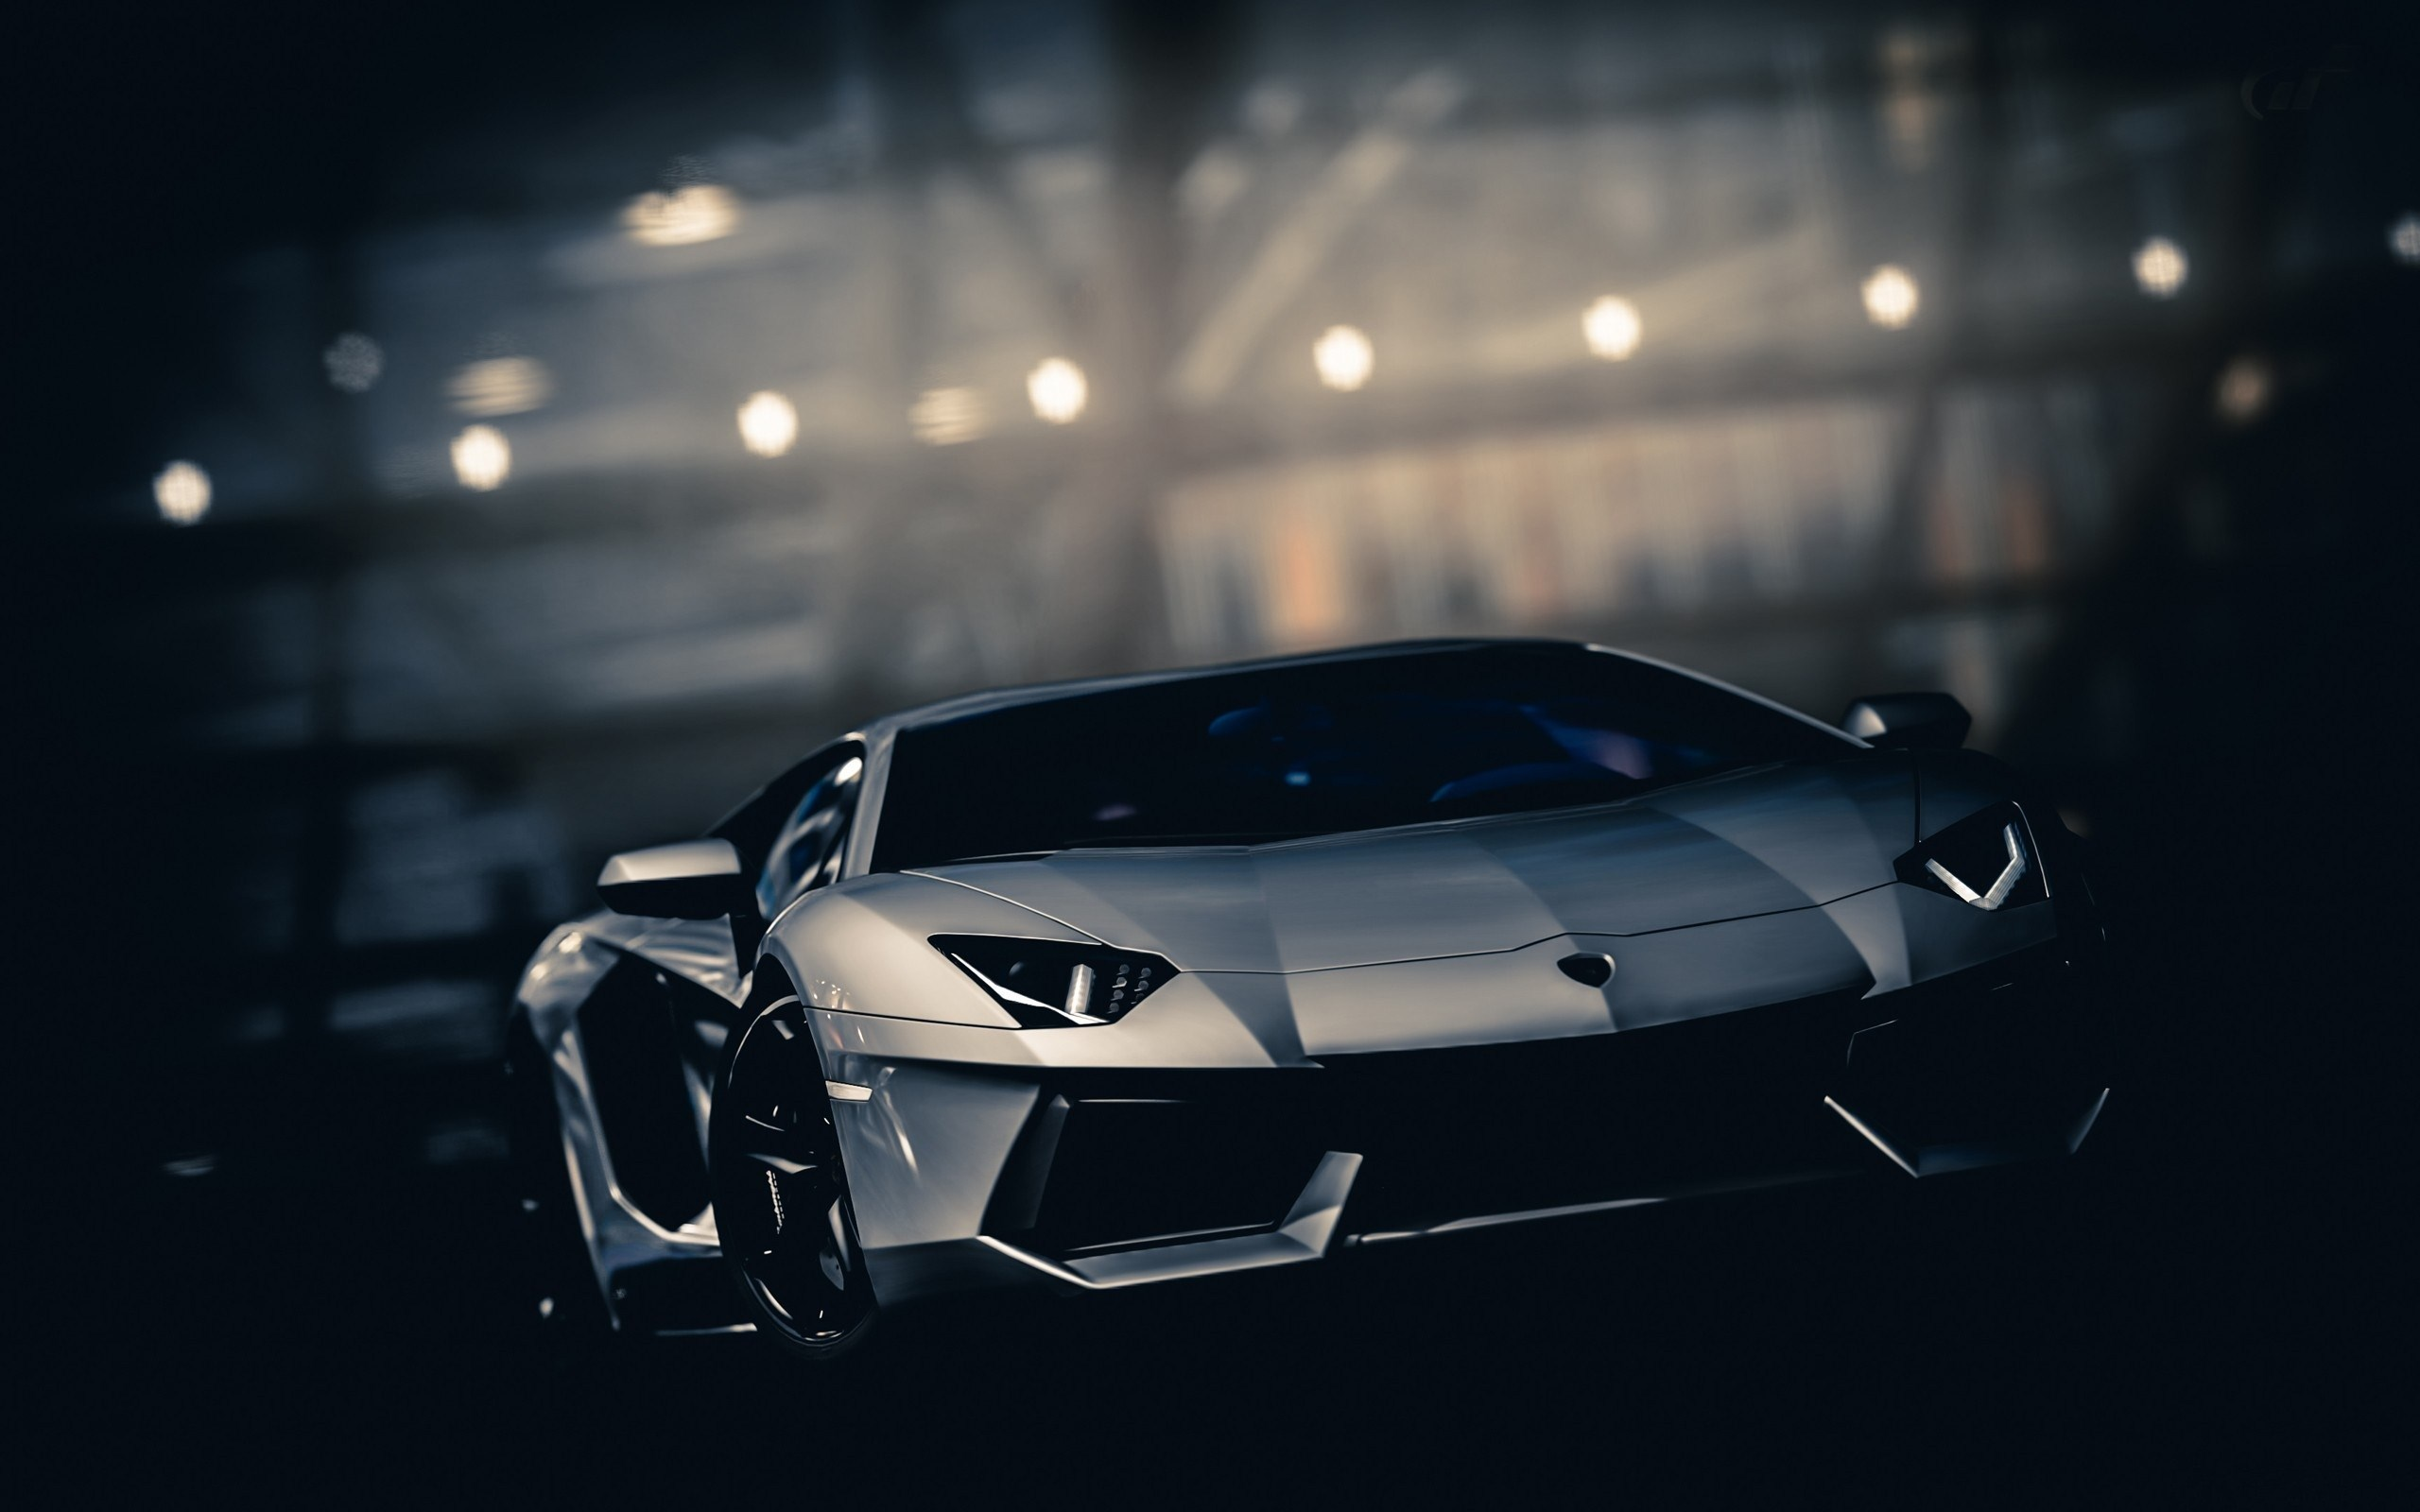 Free Download 30 Awesome Sport Car Desktop Wallpapers